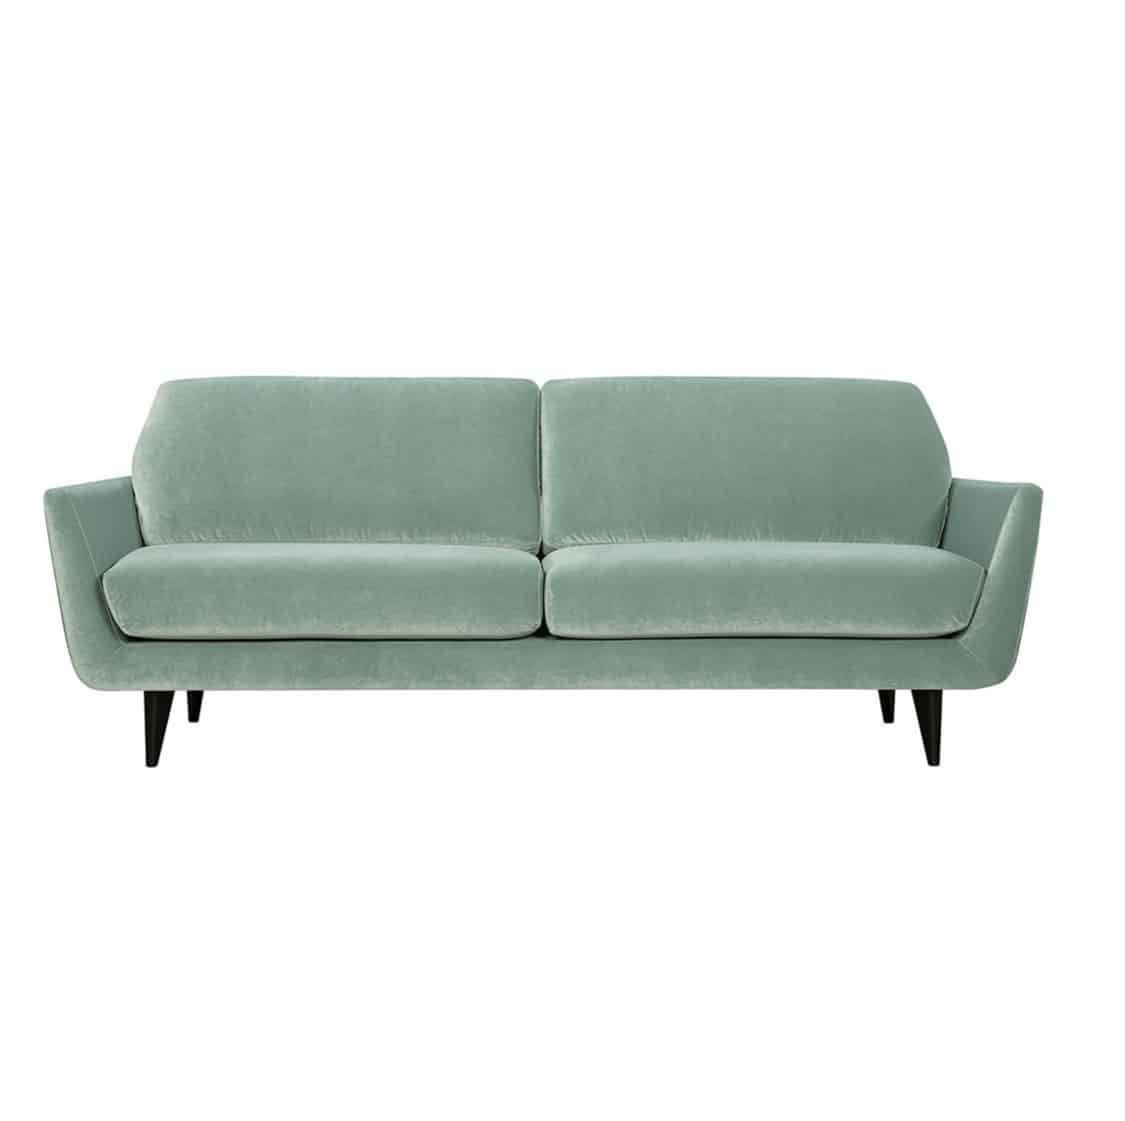 Richmond Sofa 3 Seater DeFrae Contract Furniture Rucola Sits Grey